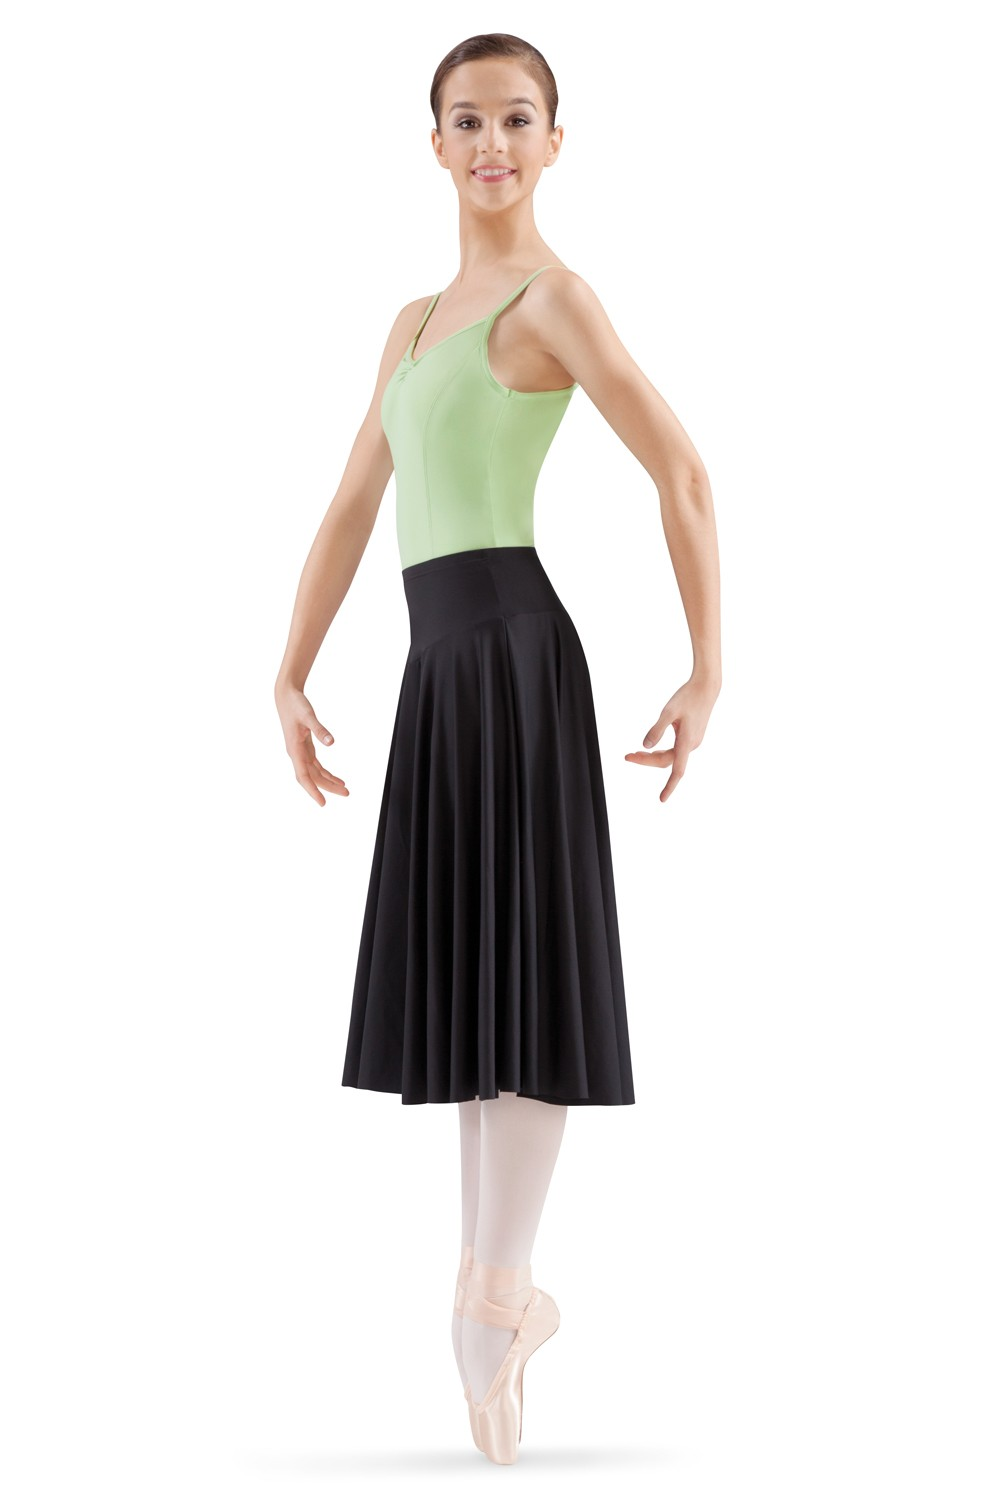 Circle Skirt Women's Dance Skirts